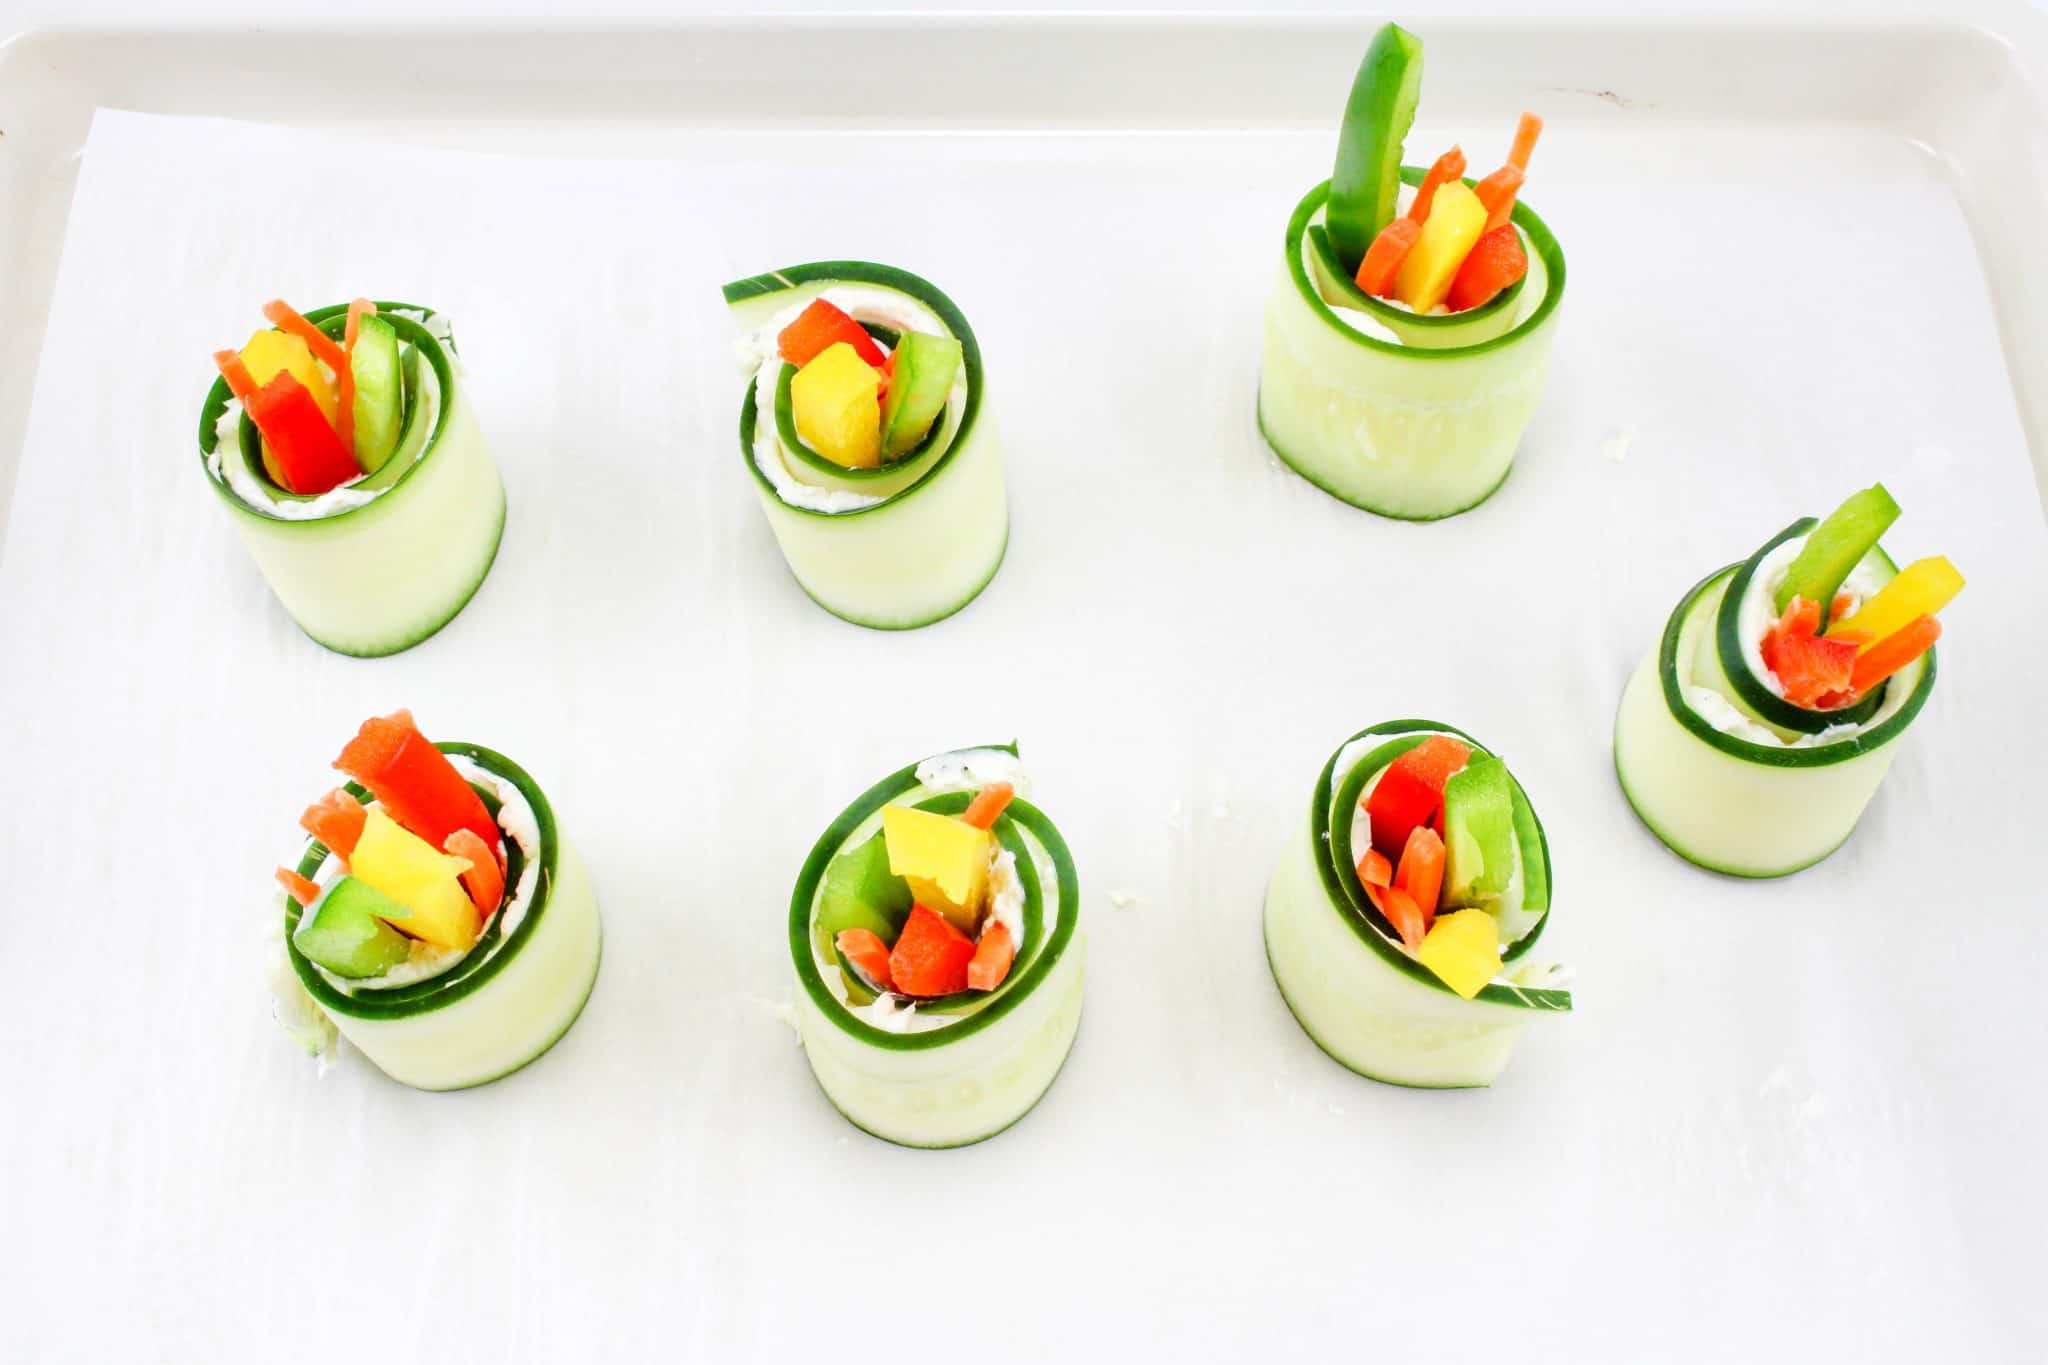 Tasty Vegetable and cucumber bites recipe